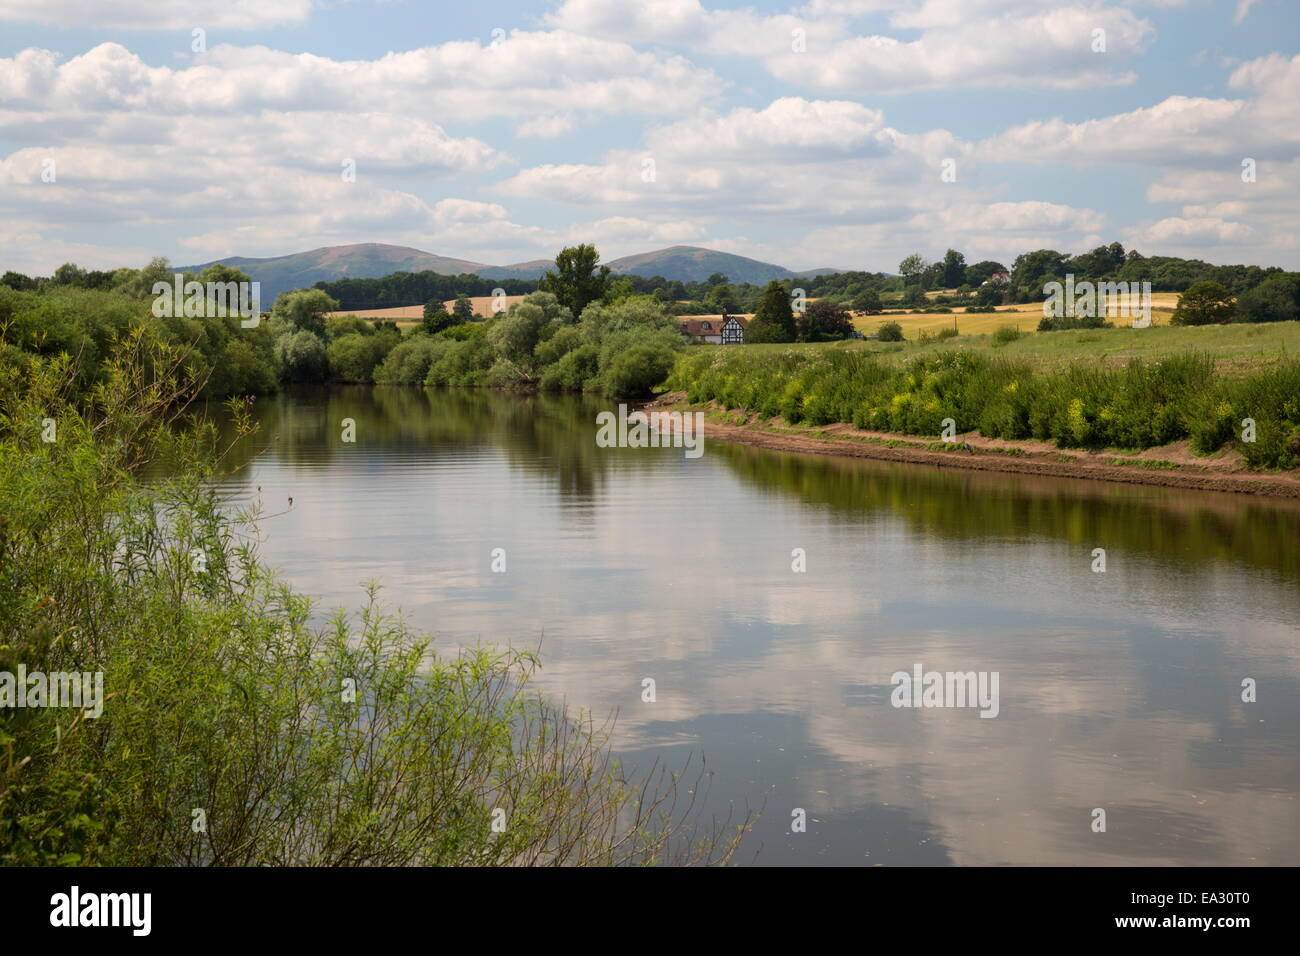 River Severn and the Malvern Hills, near Kempsey, Worcestershire, England, United Kingdom, Europe - Stock Image